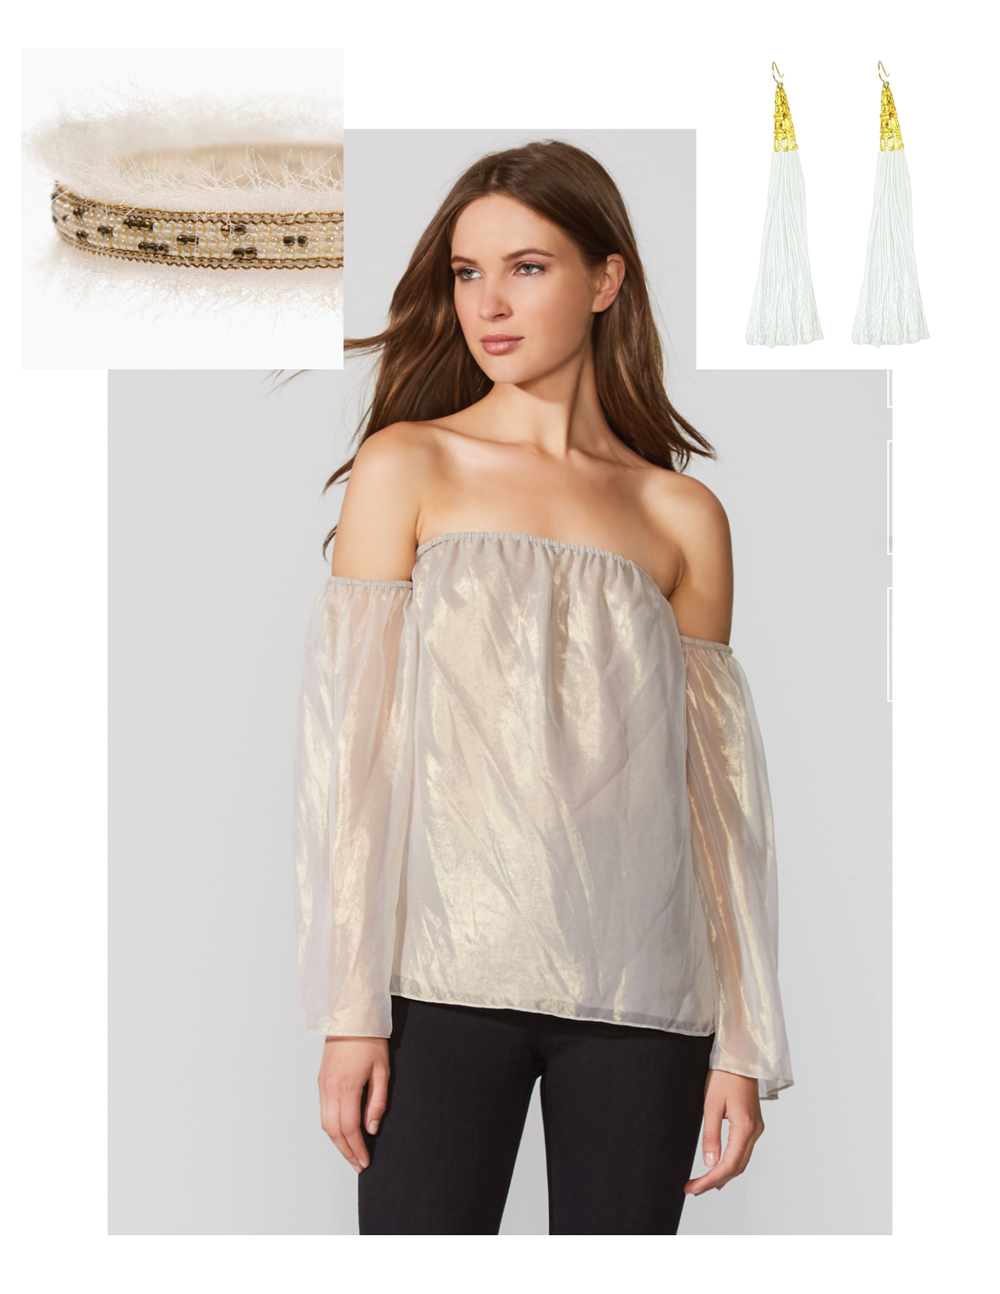 accessories_goldshoulder.png